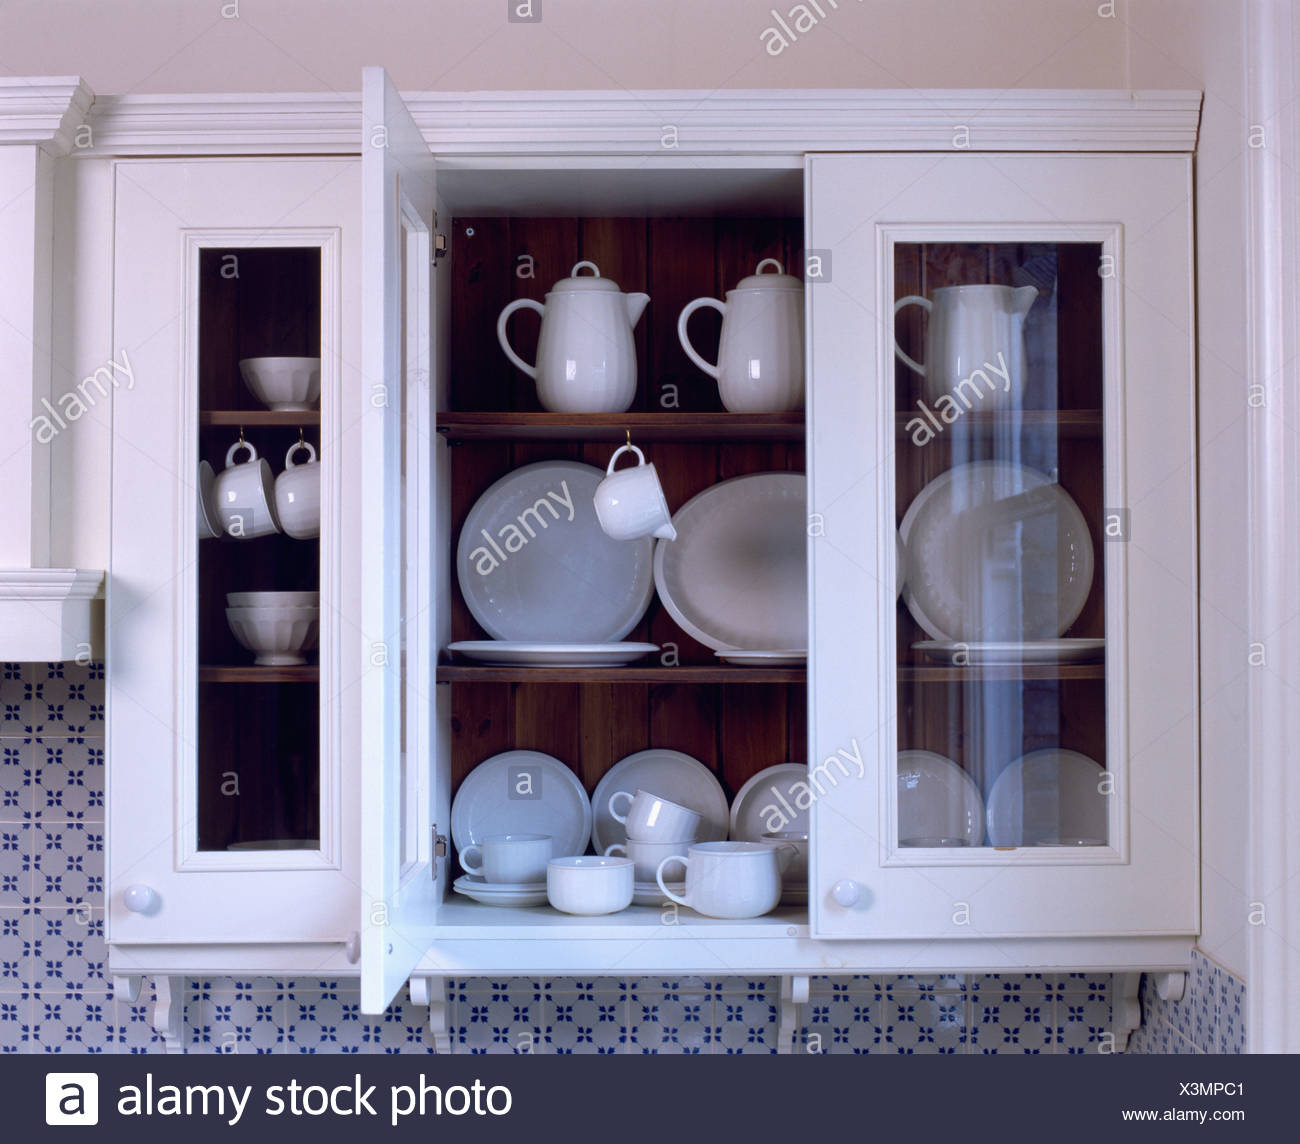 White Wall Cupboard With Glass Doors Open To Reveal White Crockery